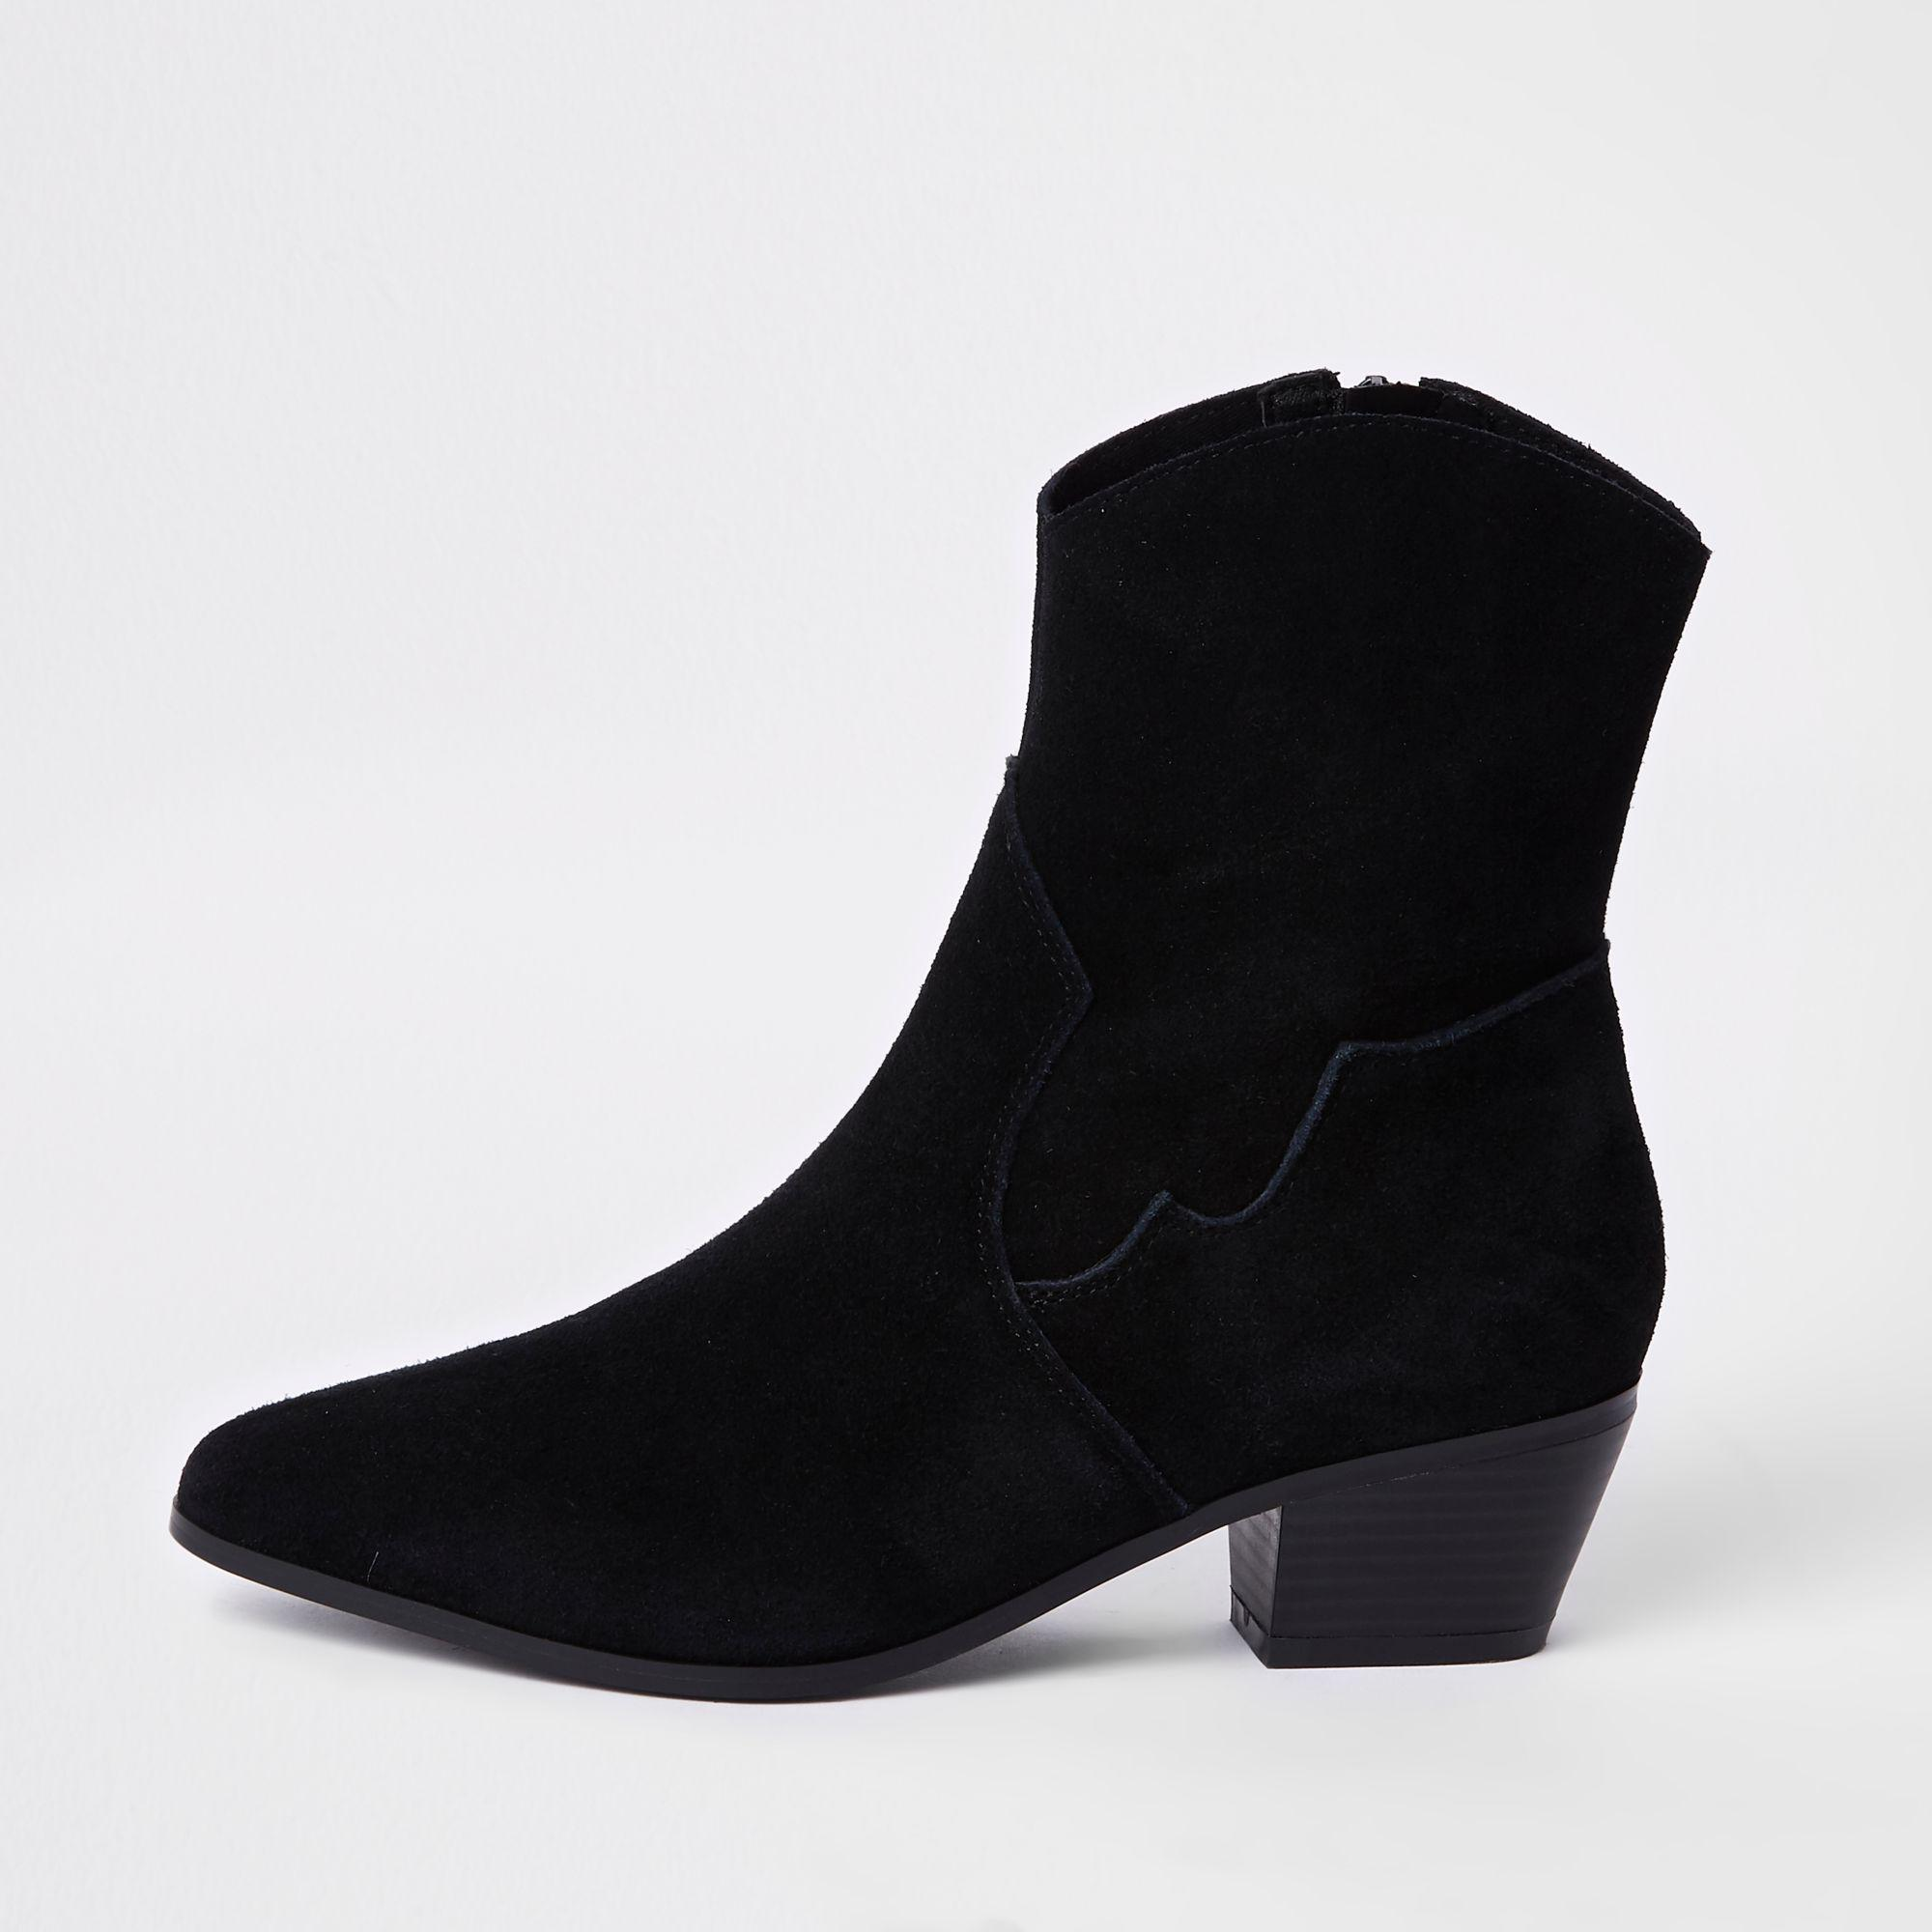 db6e5ae17cfc Lyst - River Island Black Suede Western Ankle Boots in Black